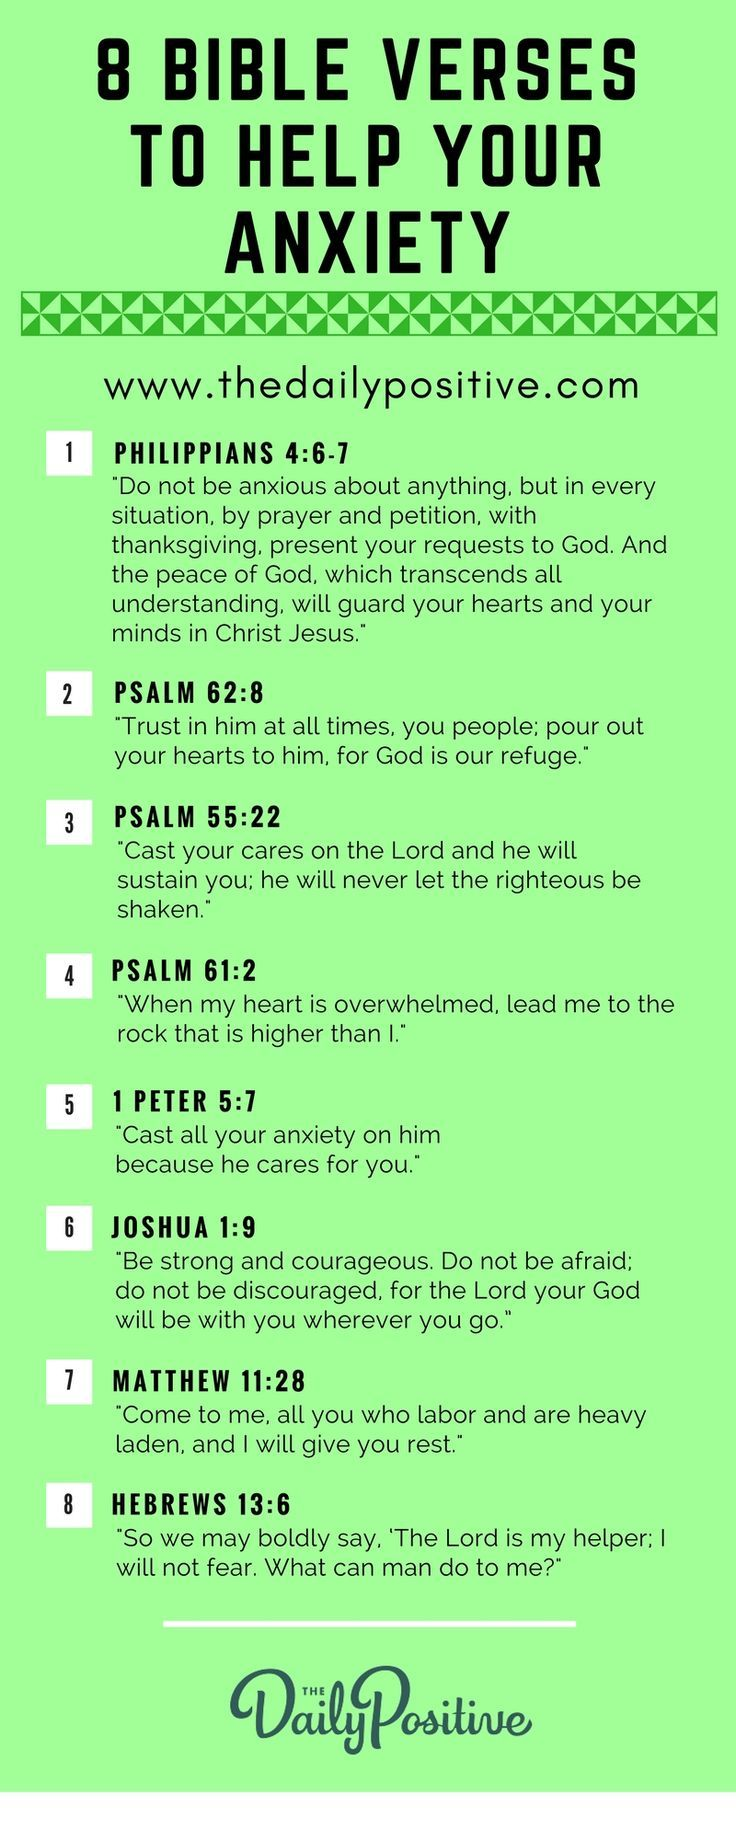 7 Rules Of Life Quote Inspirational Quotes About Strength 8Bibleversesforanxiety1